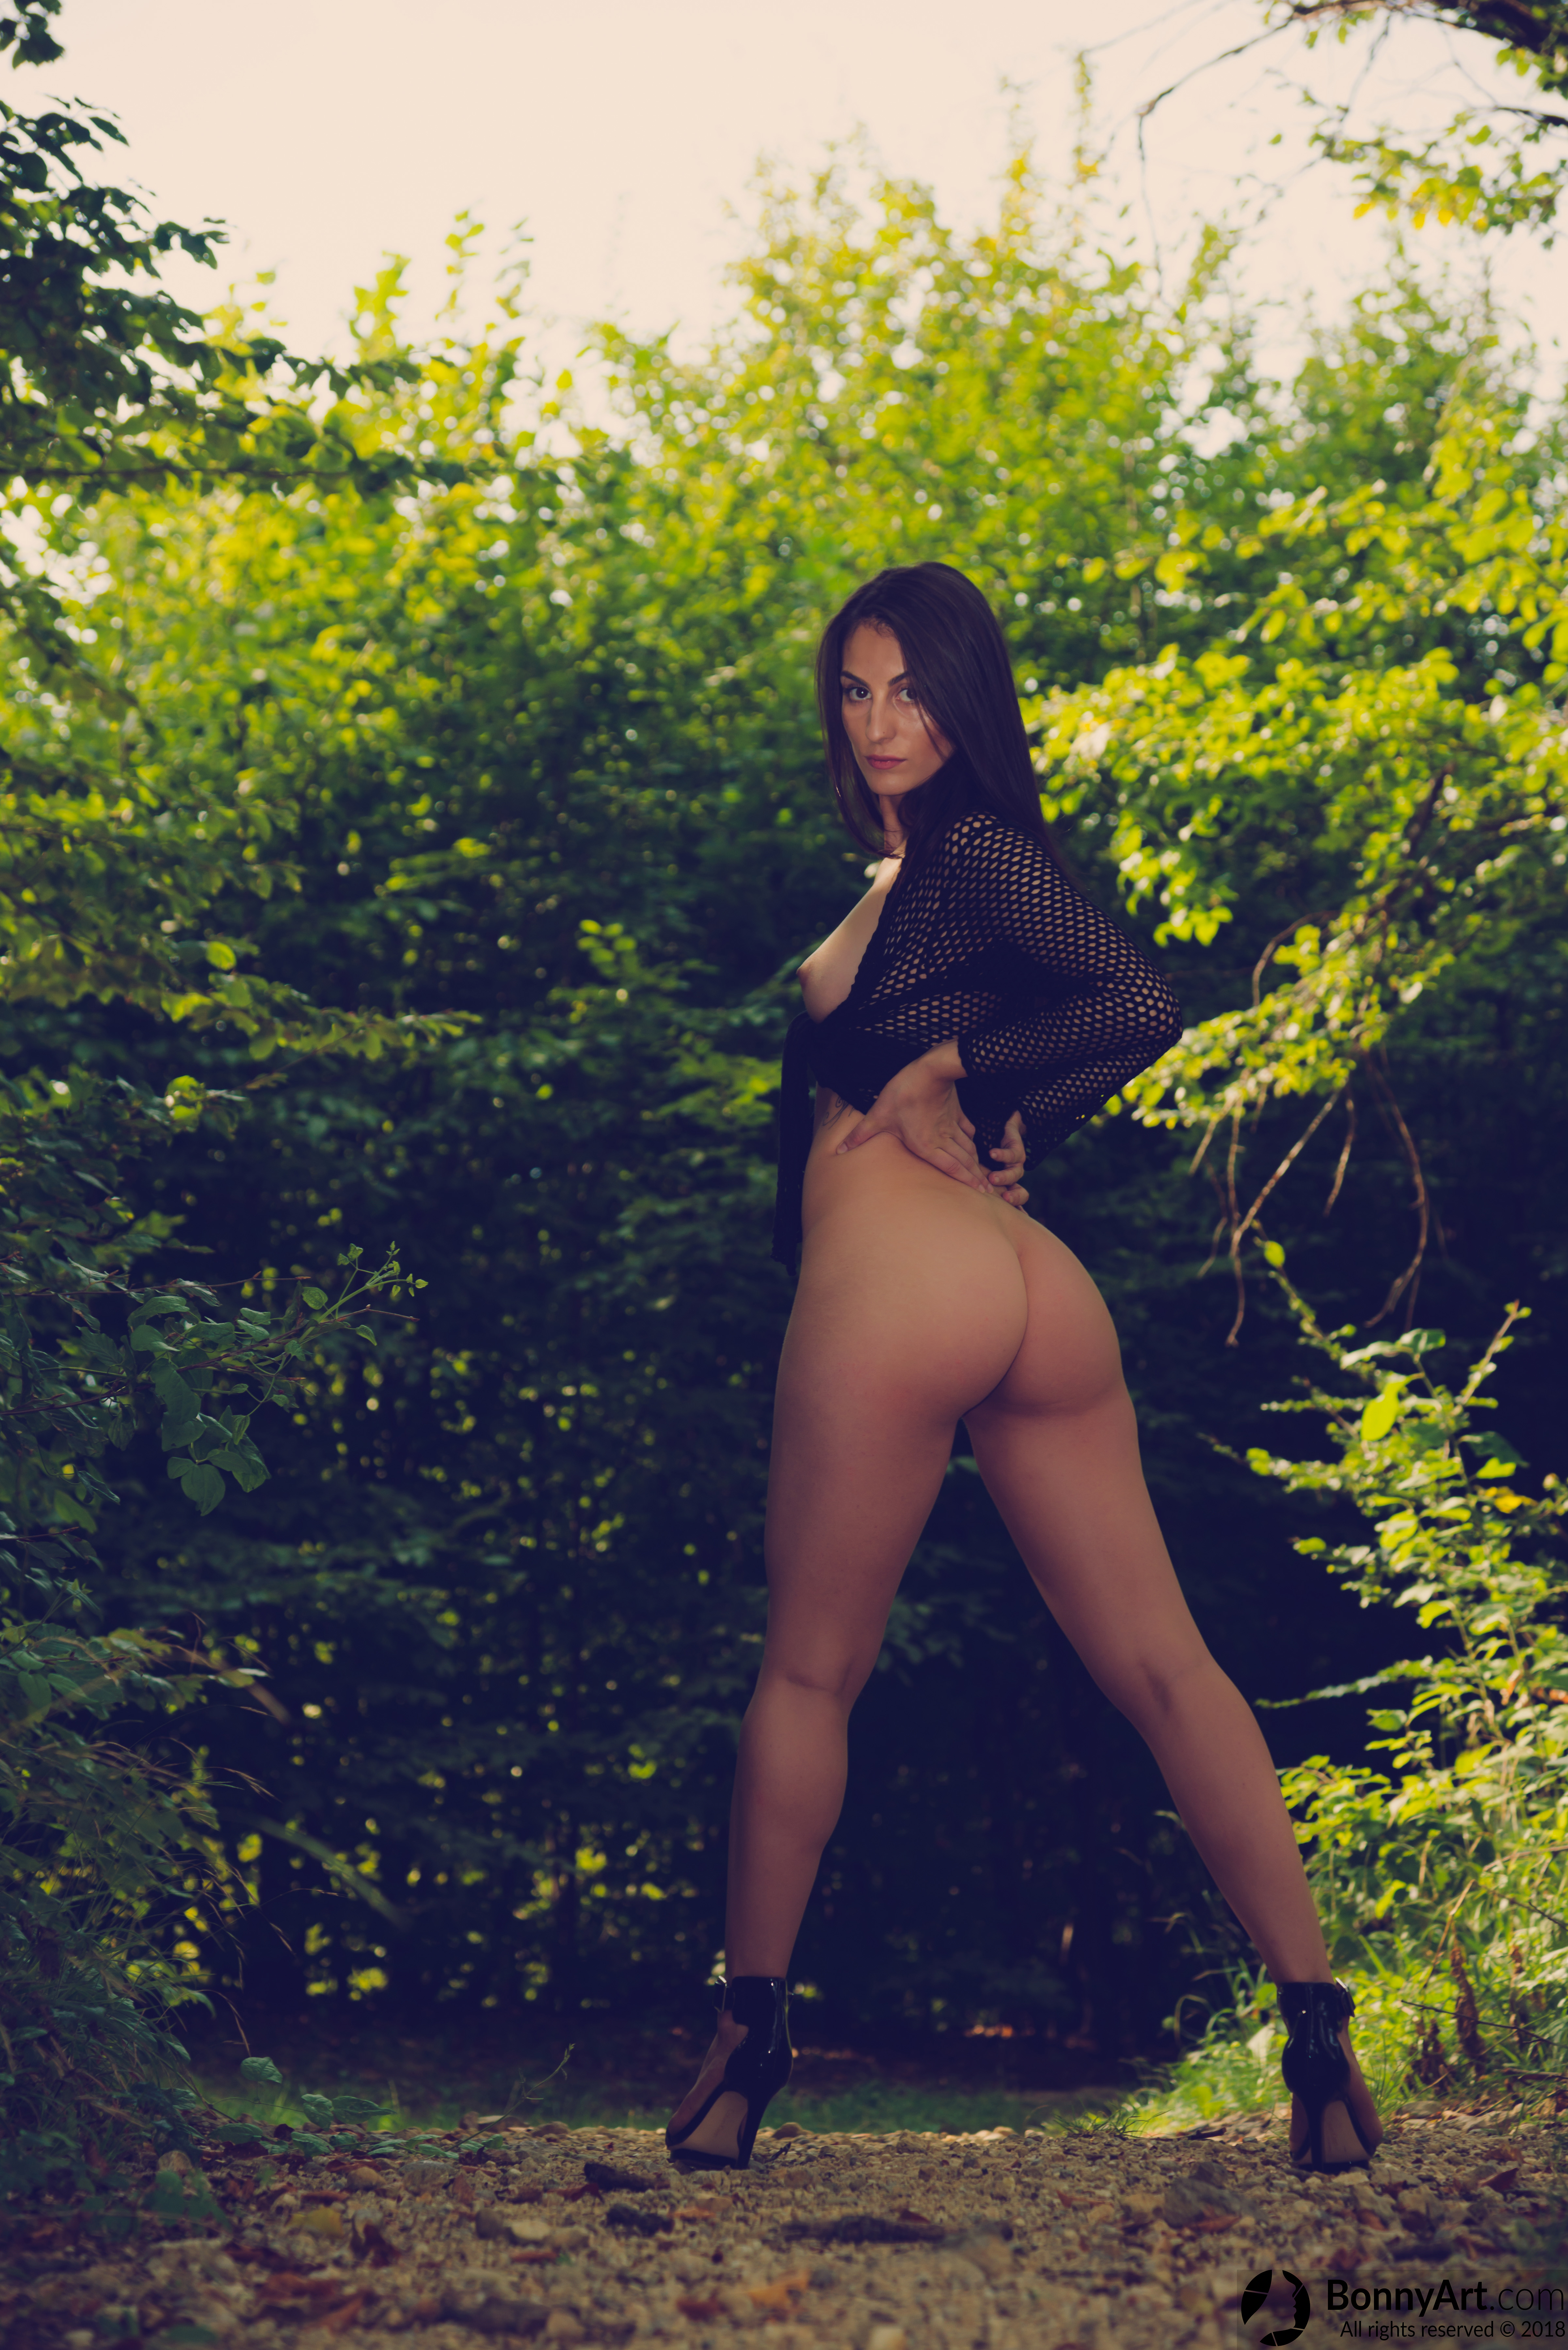 Hot Round Booty Girl Undressed in the Forest